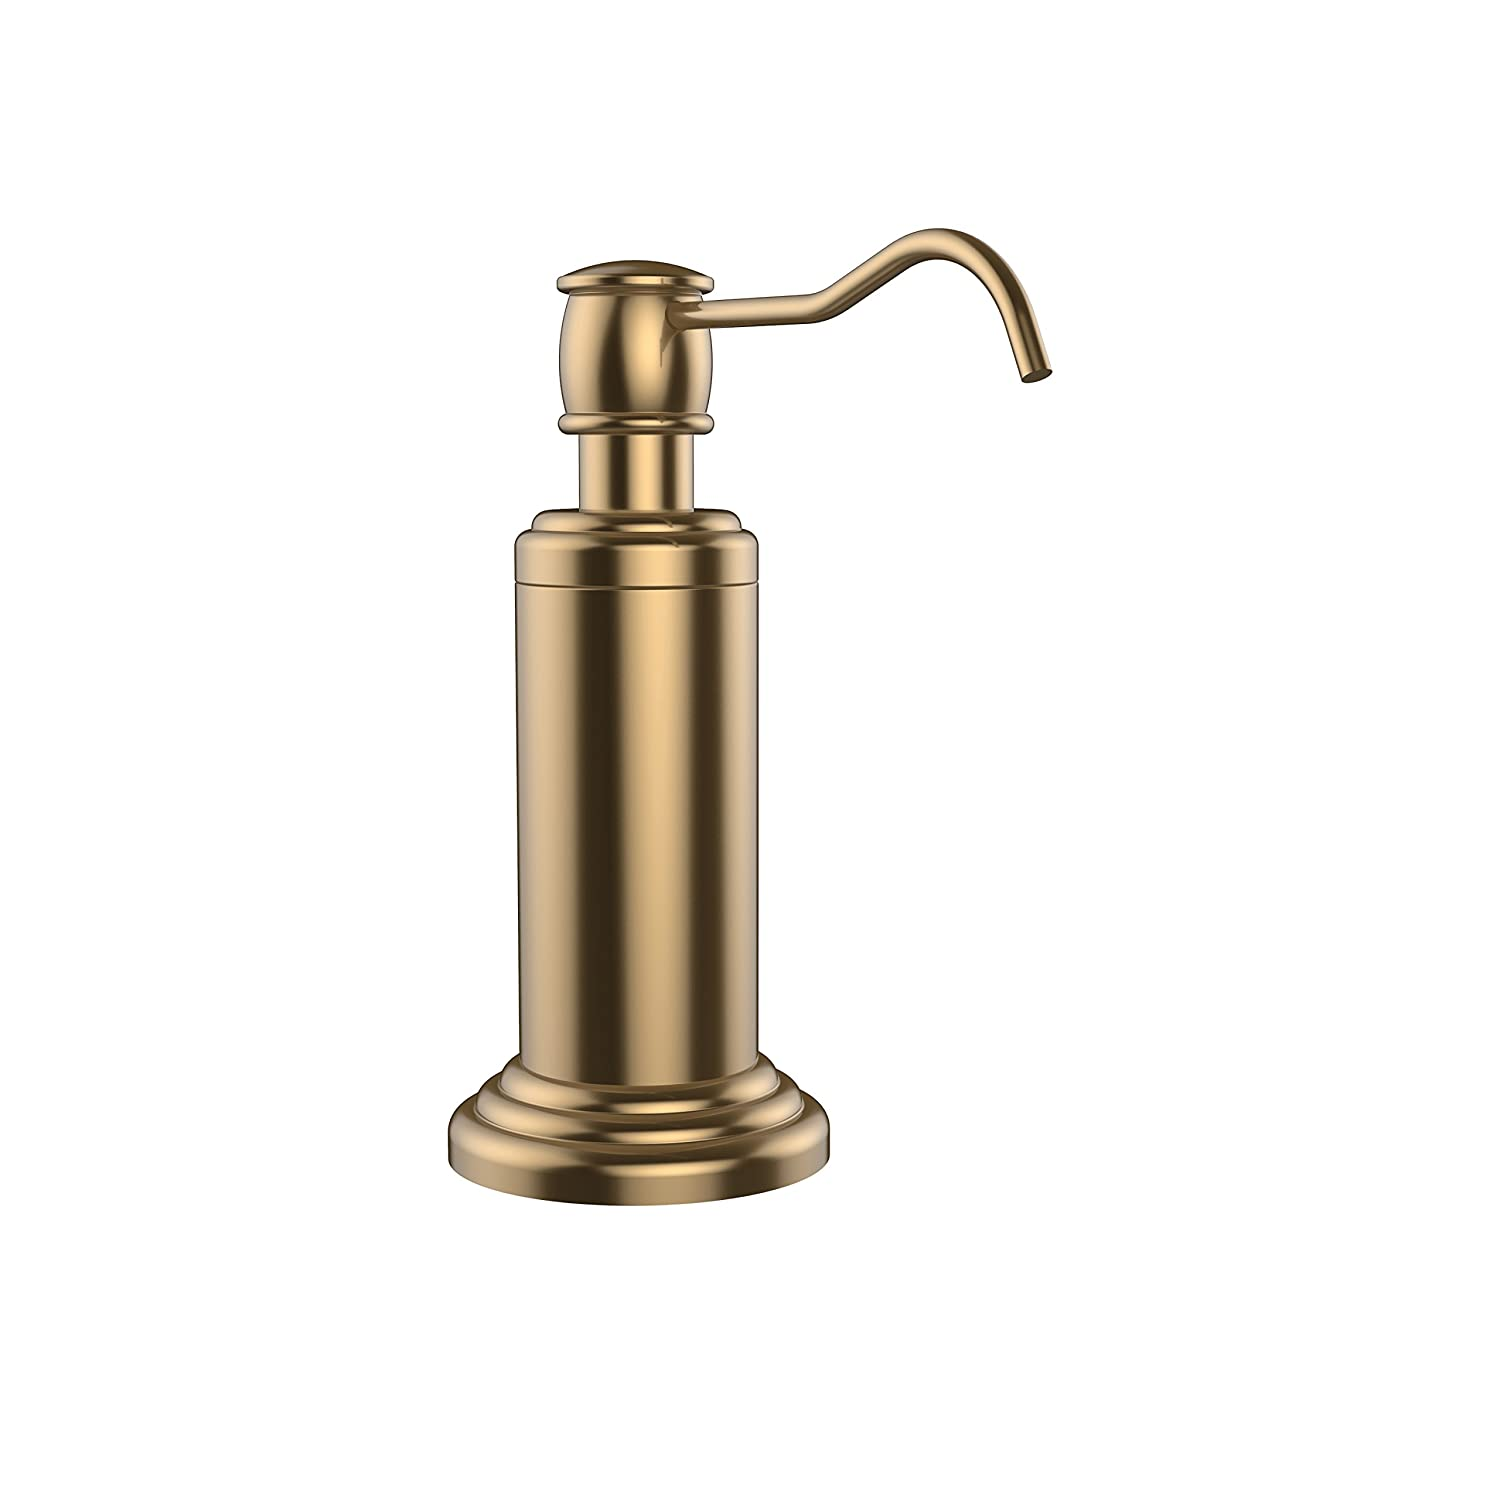 Allied Brass WP-61-ORB Waverly Place Collection Vanity Top Soap Dispenser Oil Rubbed Bronze